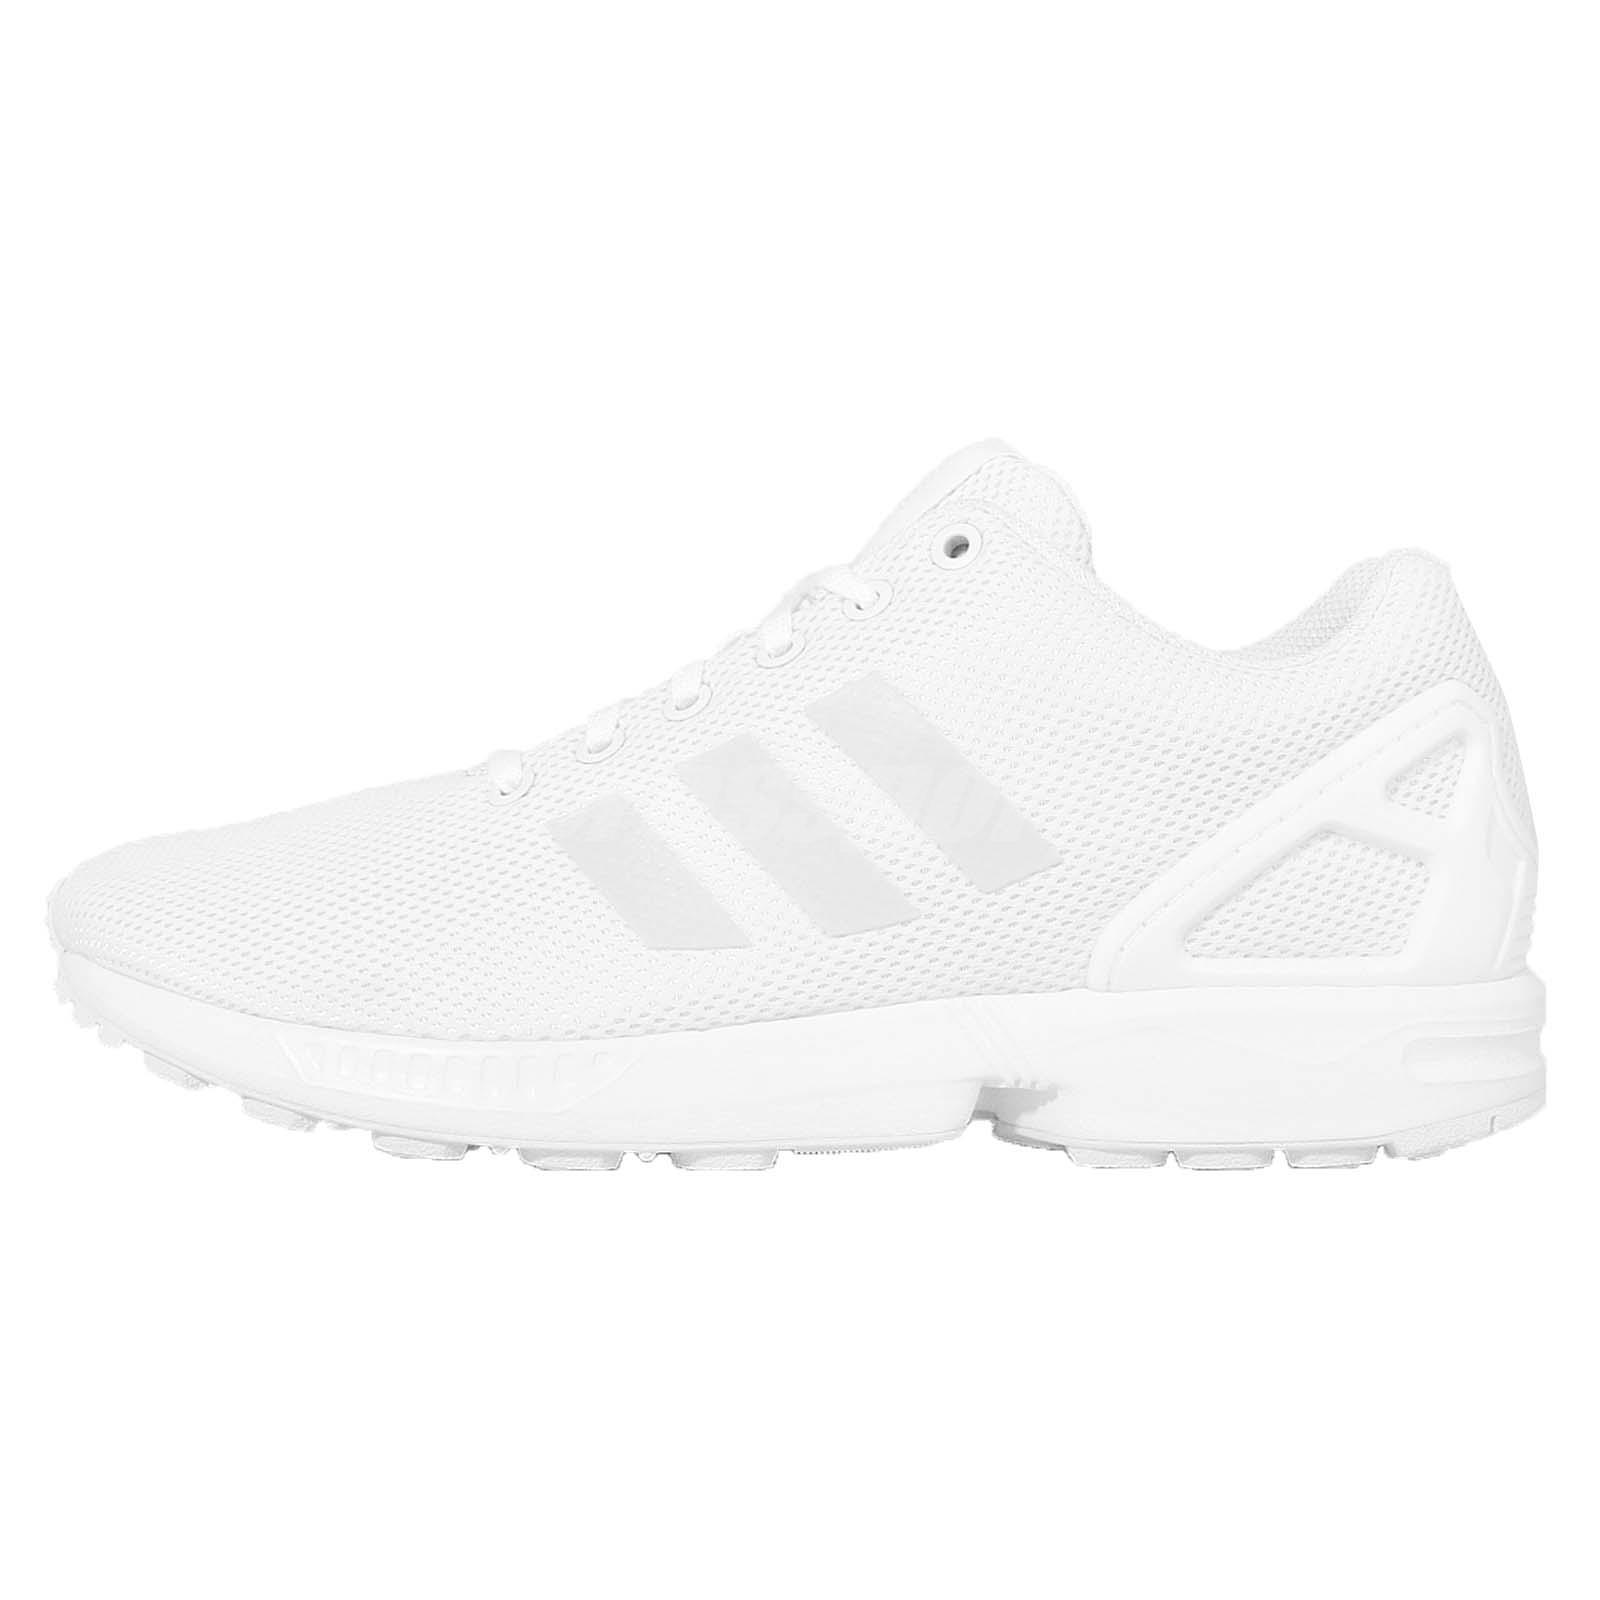 adidas zx flux shoes white